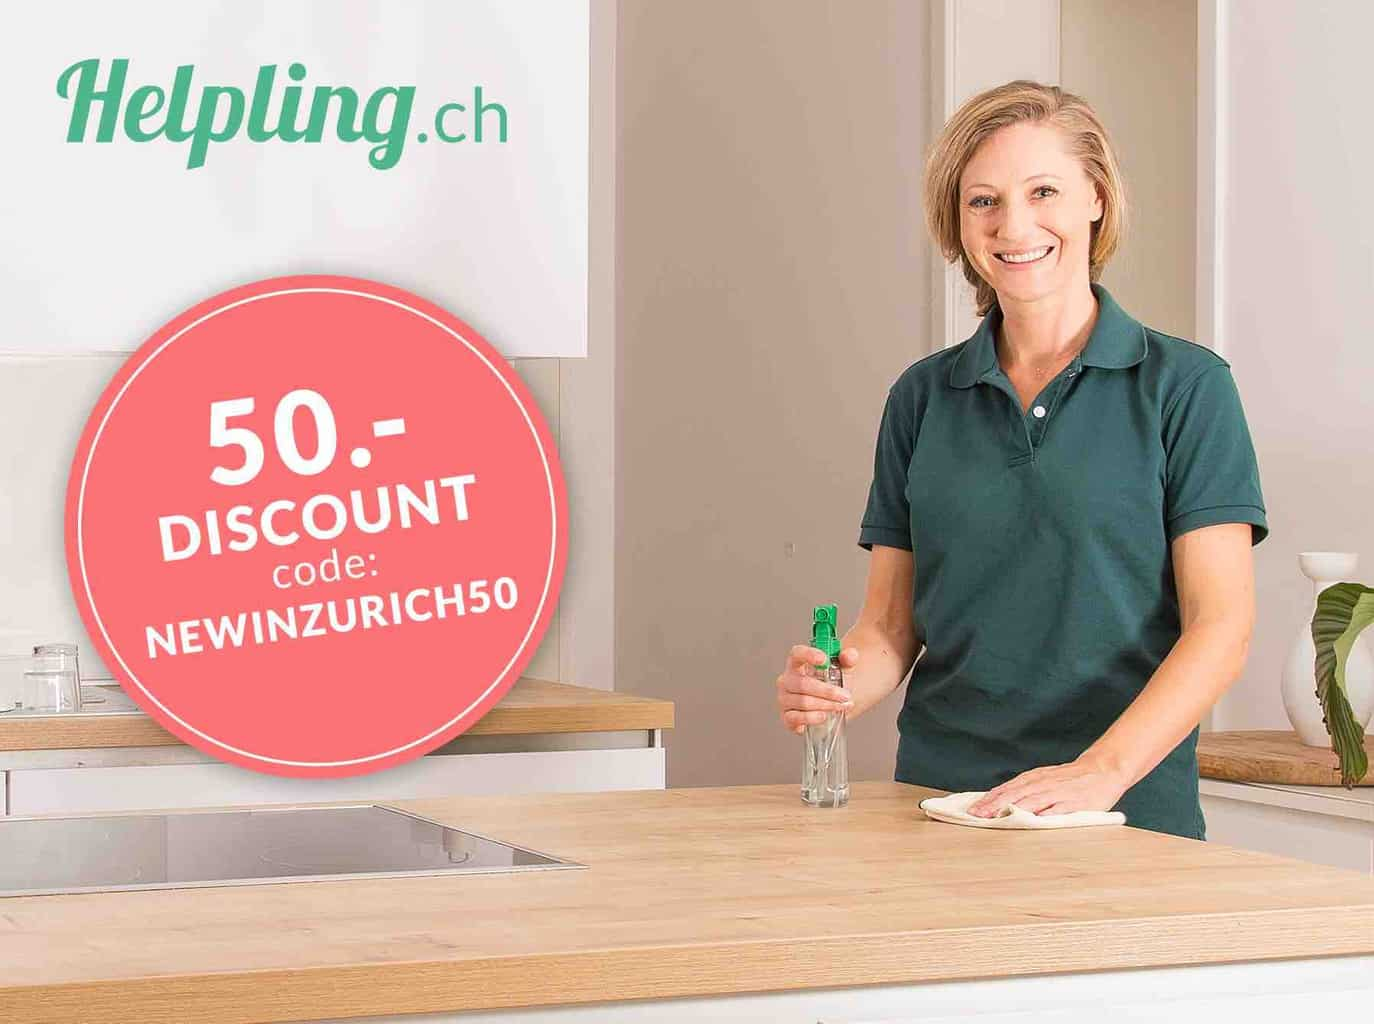 Find a Cleaner for your Home in Switzerland with Helpling